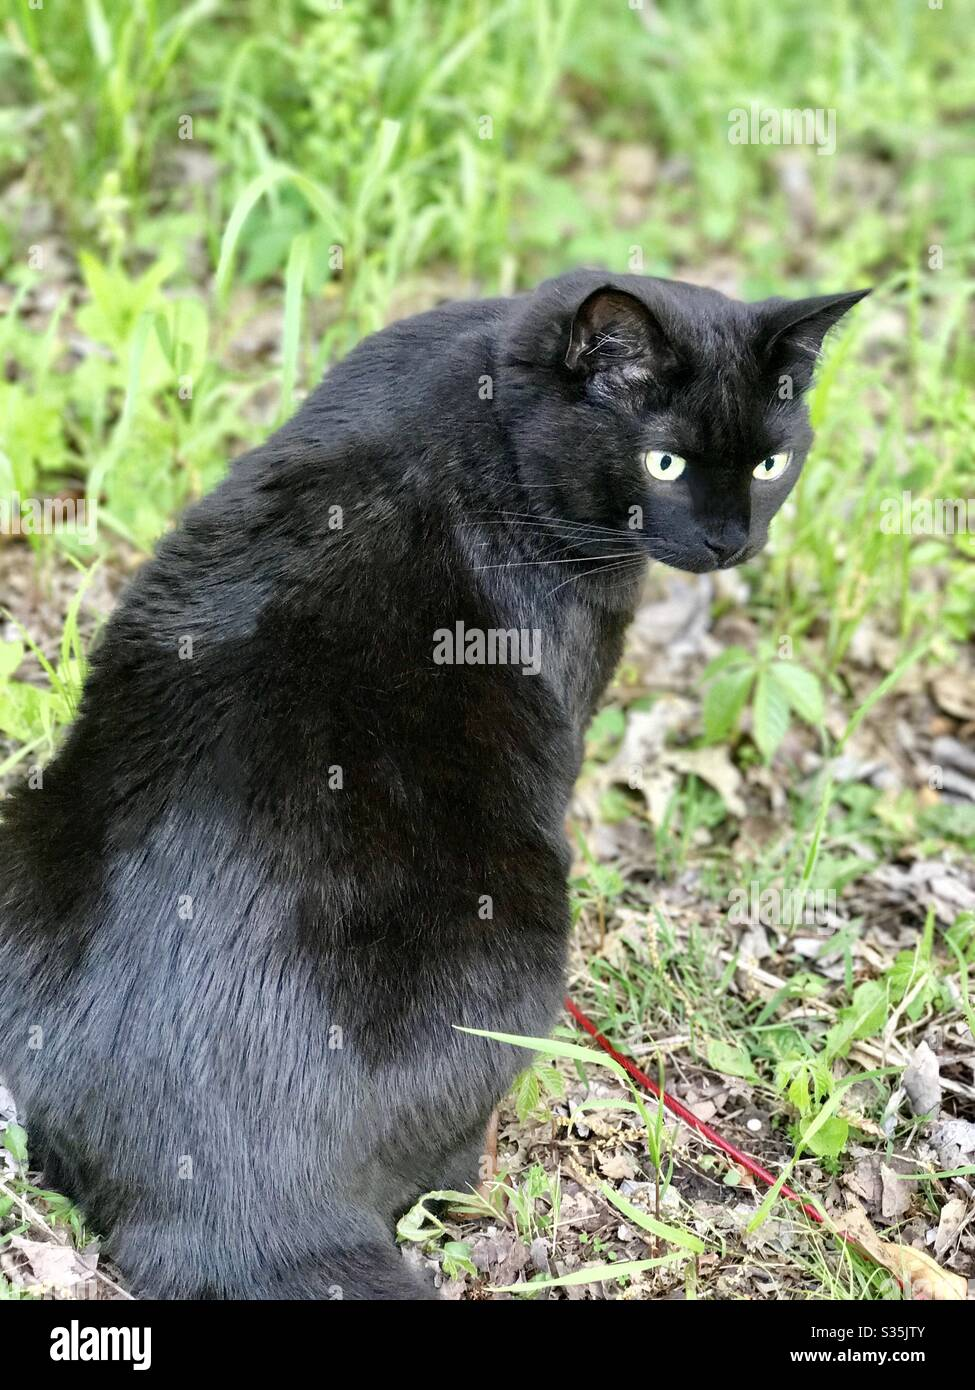 Portrait Of Beautiful Bombay Cat With Gorgeous Green Eyes Spayed Female Rescue Companion Pet Domestic Or American Shorthair Black Cat Taking A Walk On Leash Stock Photo Alamy